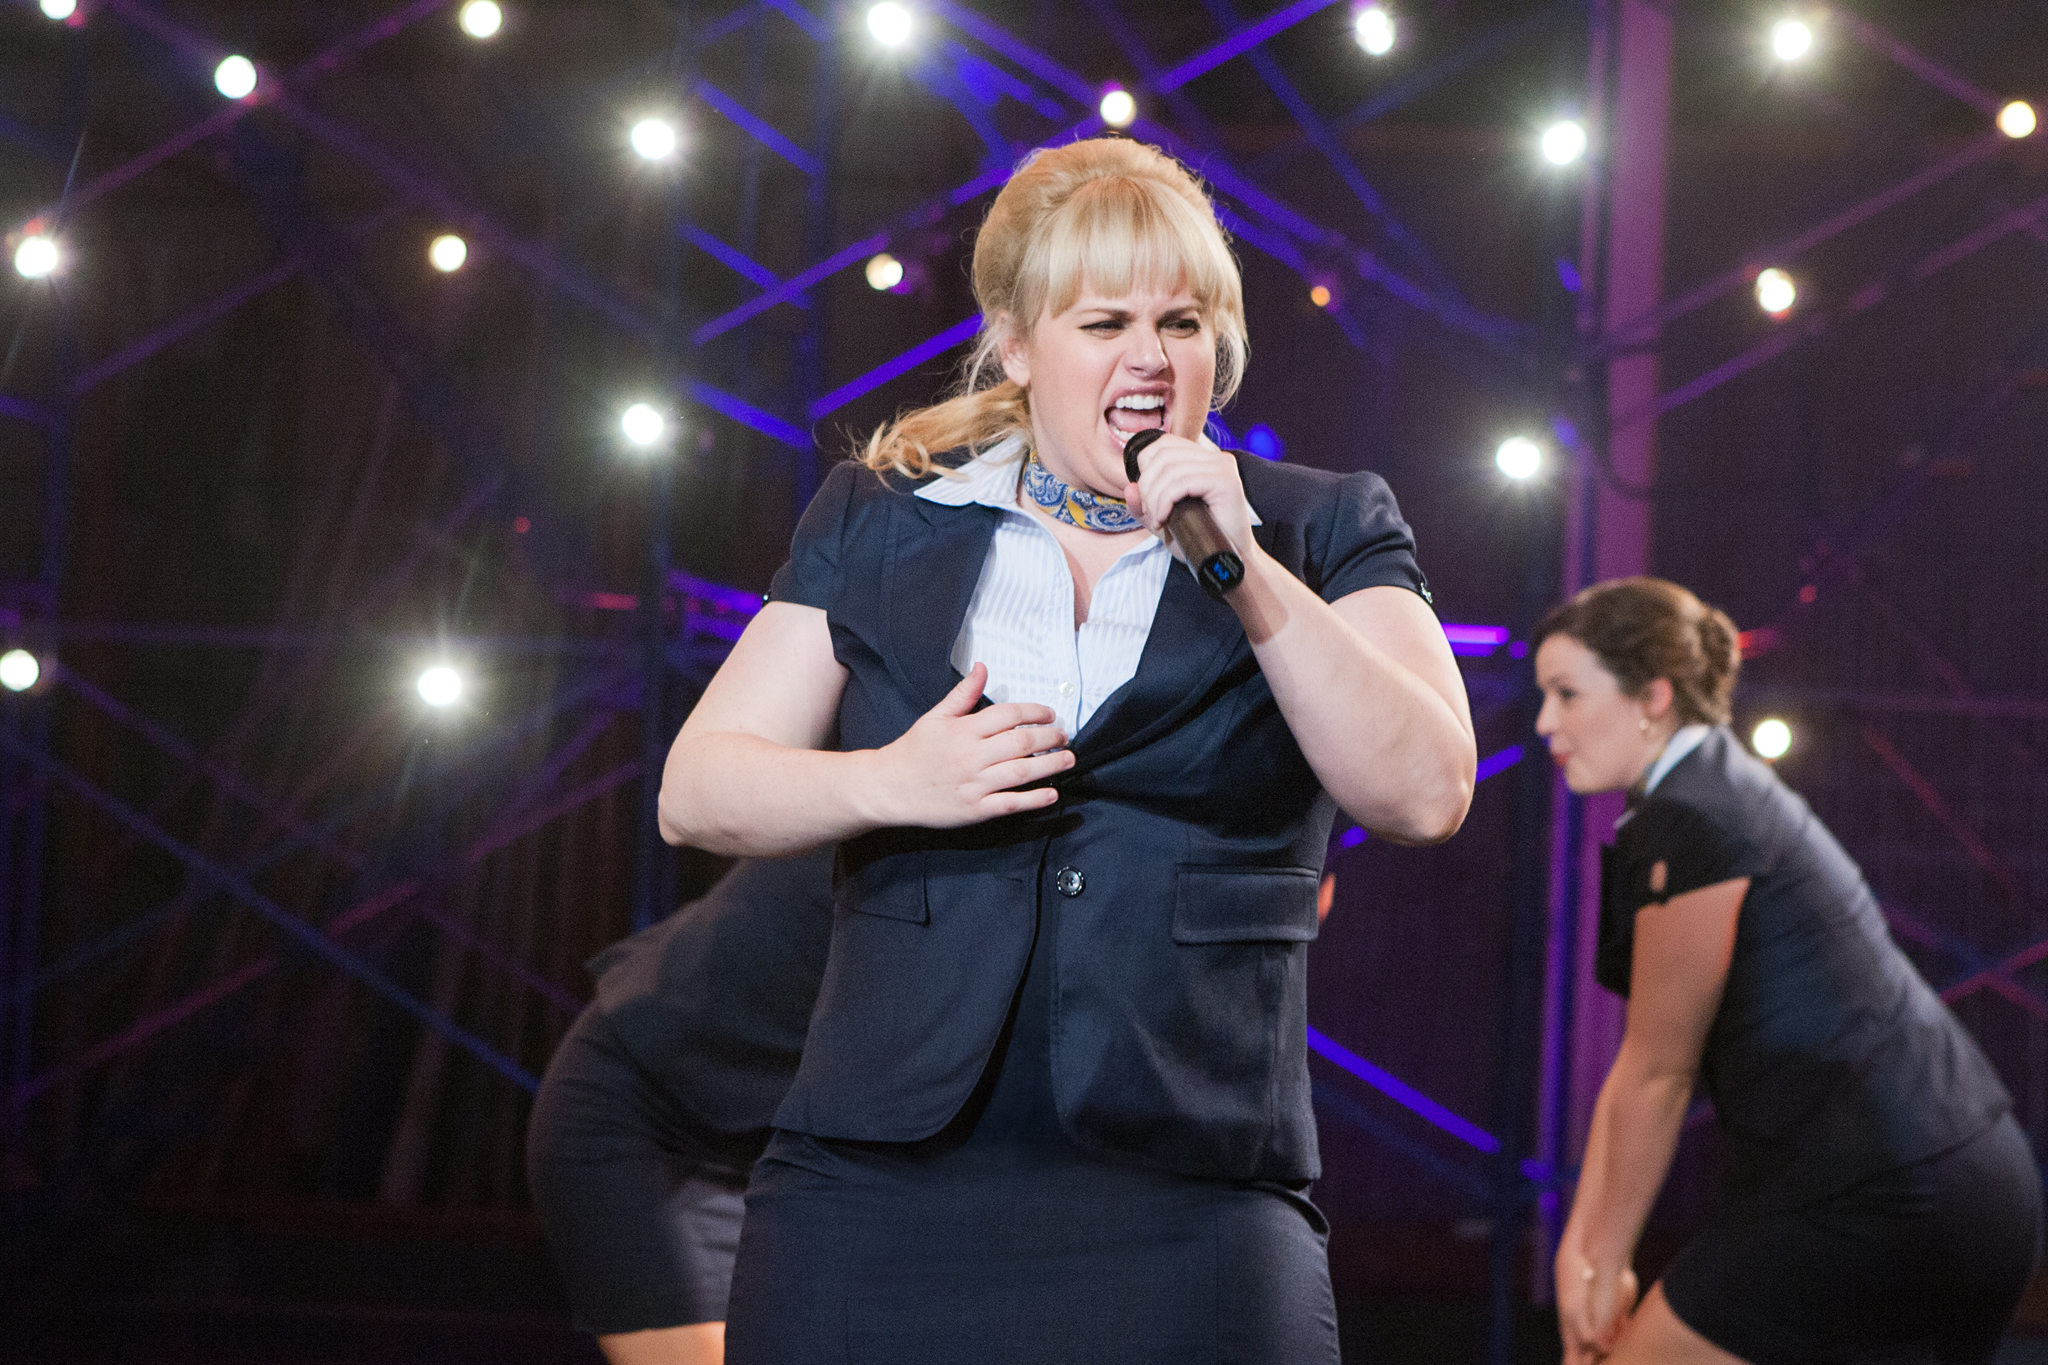 Eat | See | Hear presents Pitch Perfect